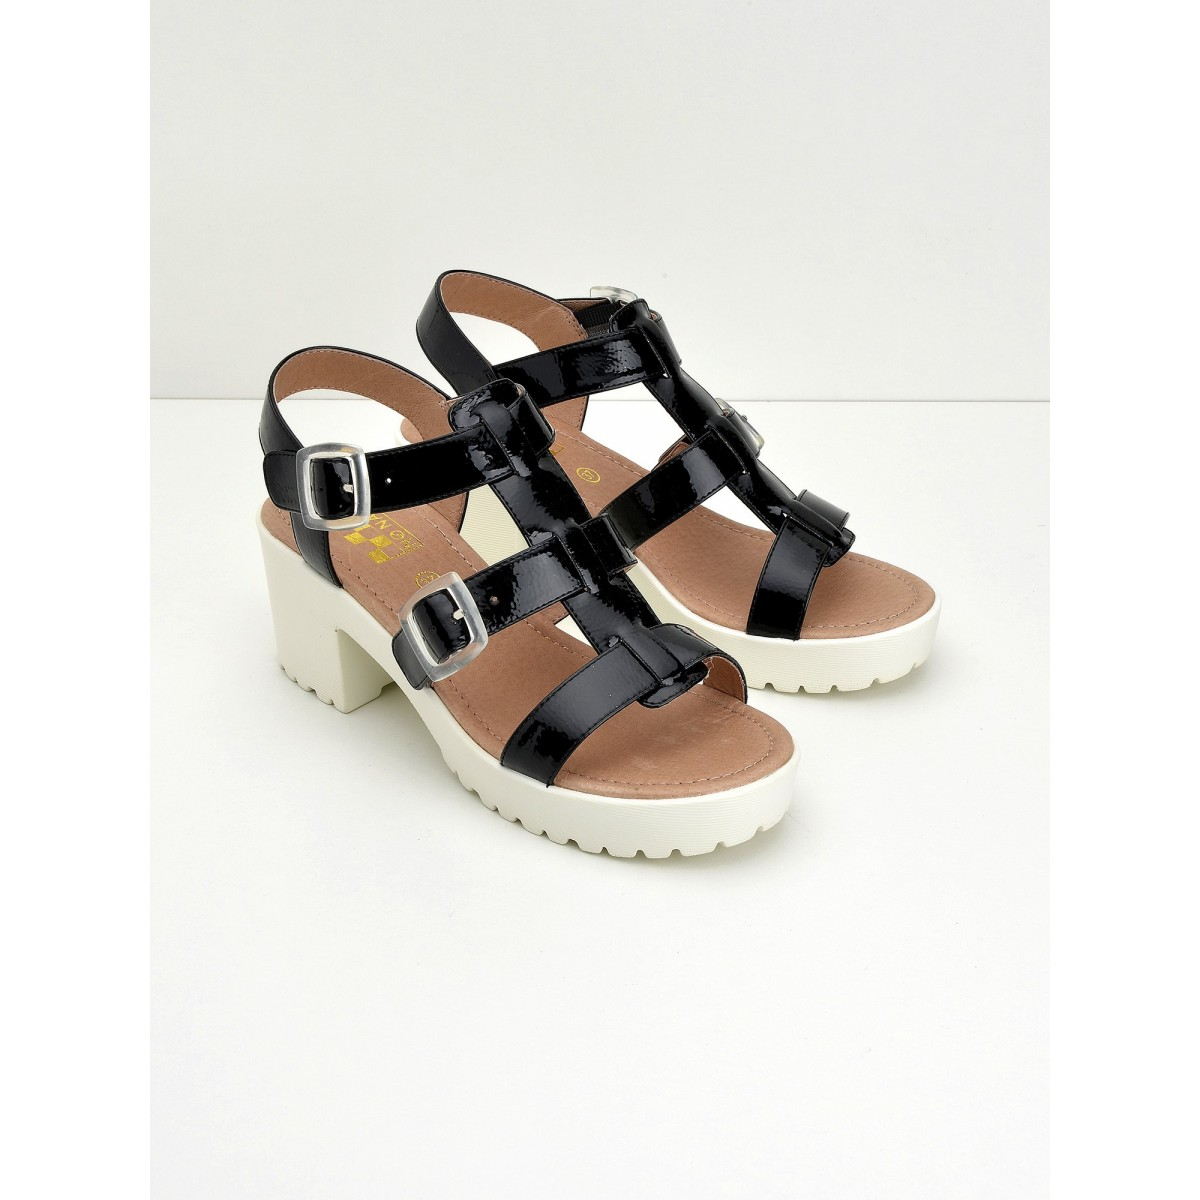 No Name Tango Sandal - Crackle - Black